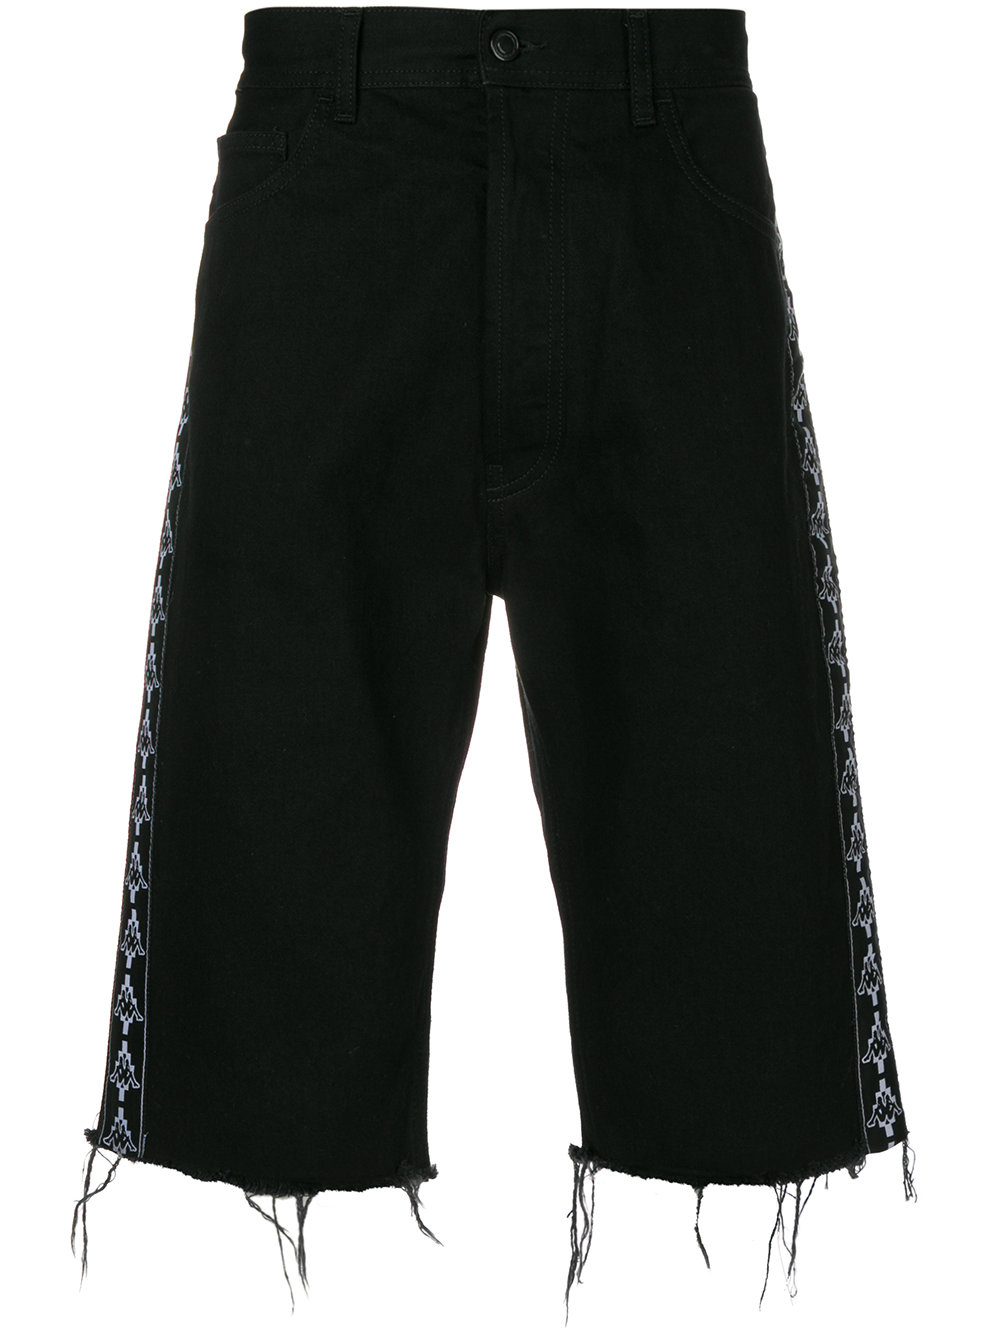 Marcelo Burlon Man KAPPA SHORTS DENIM LIGHT WASH BLACK